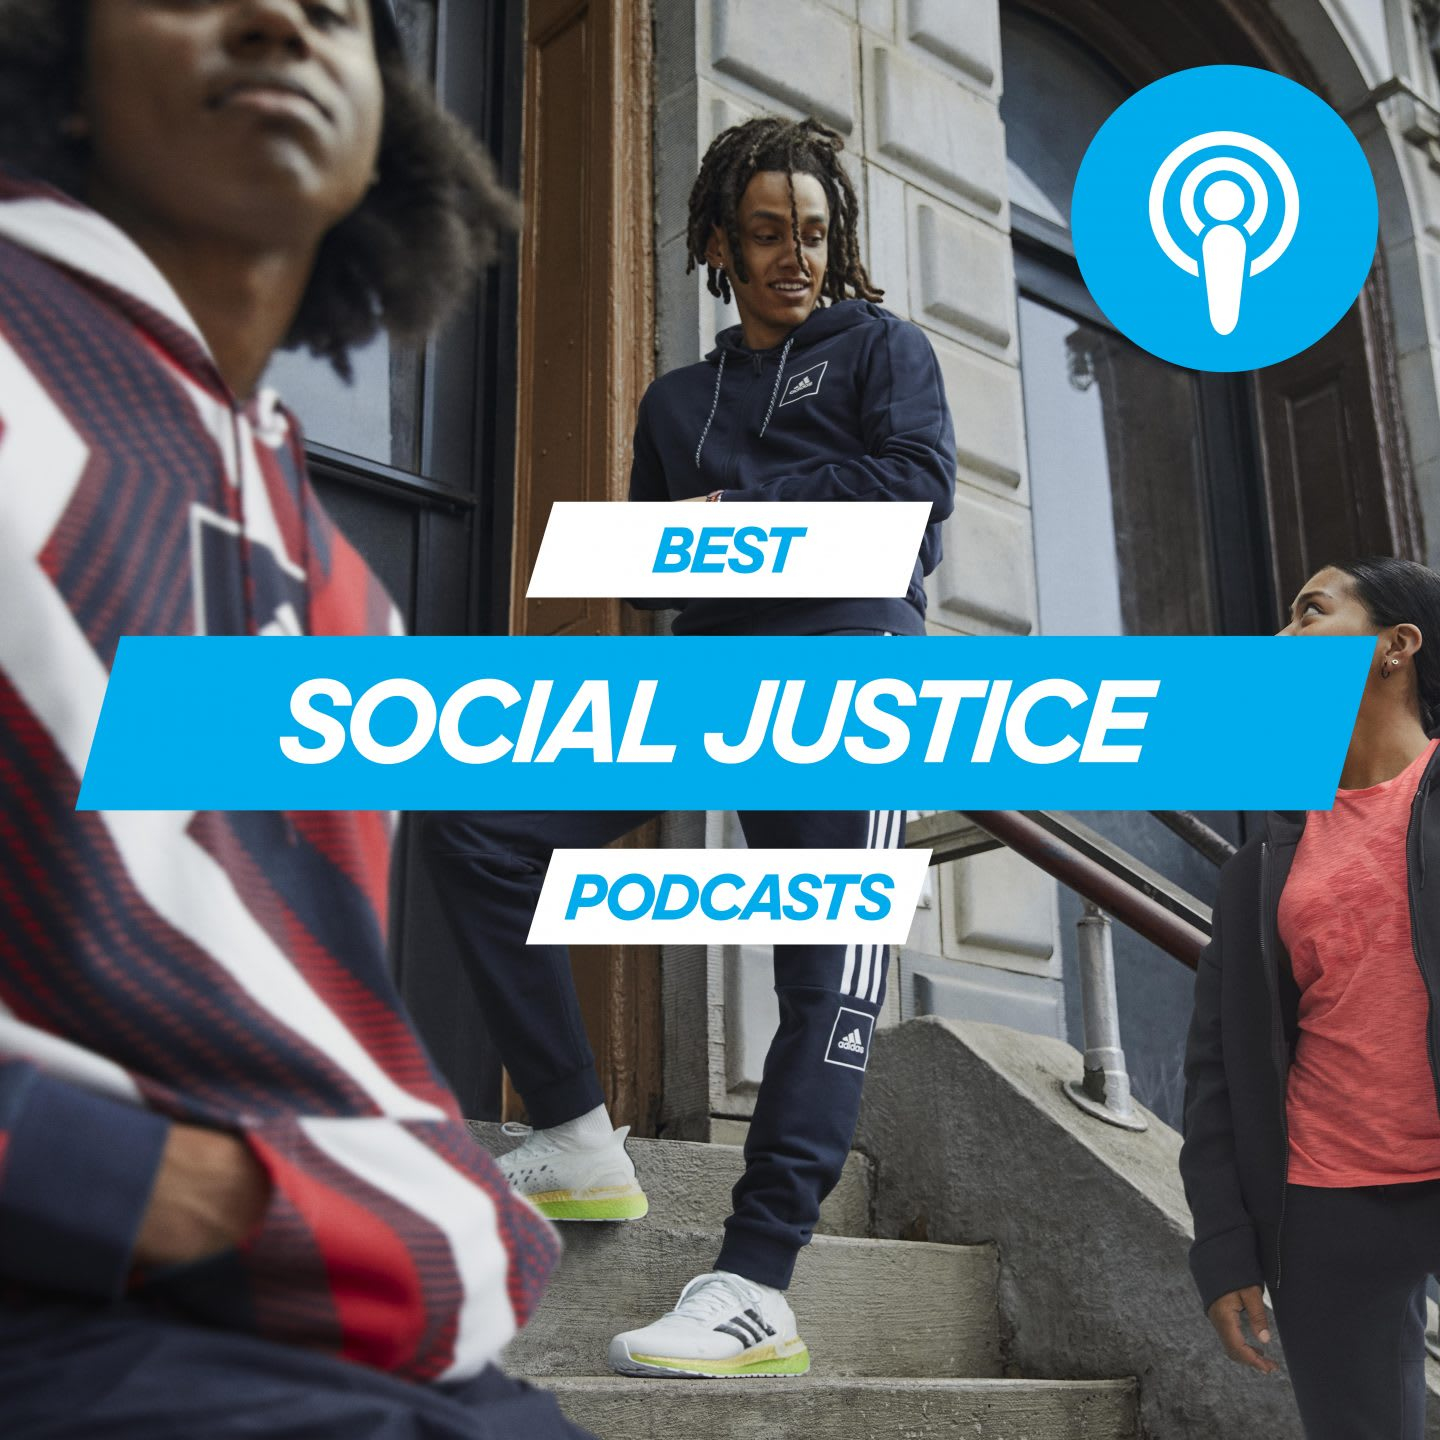 GamePlan A recommendations for best podcasts on social justice, listening, growth mindset, podcasts, corporate athlete